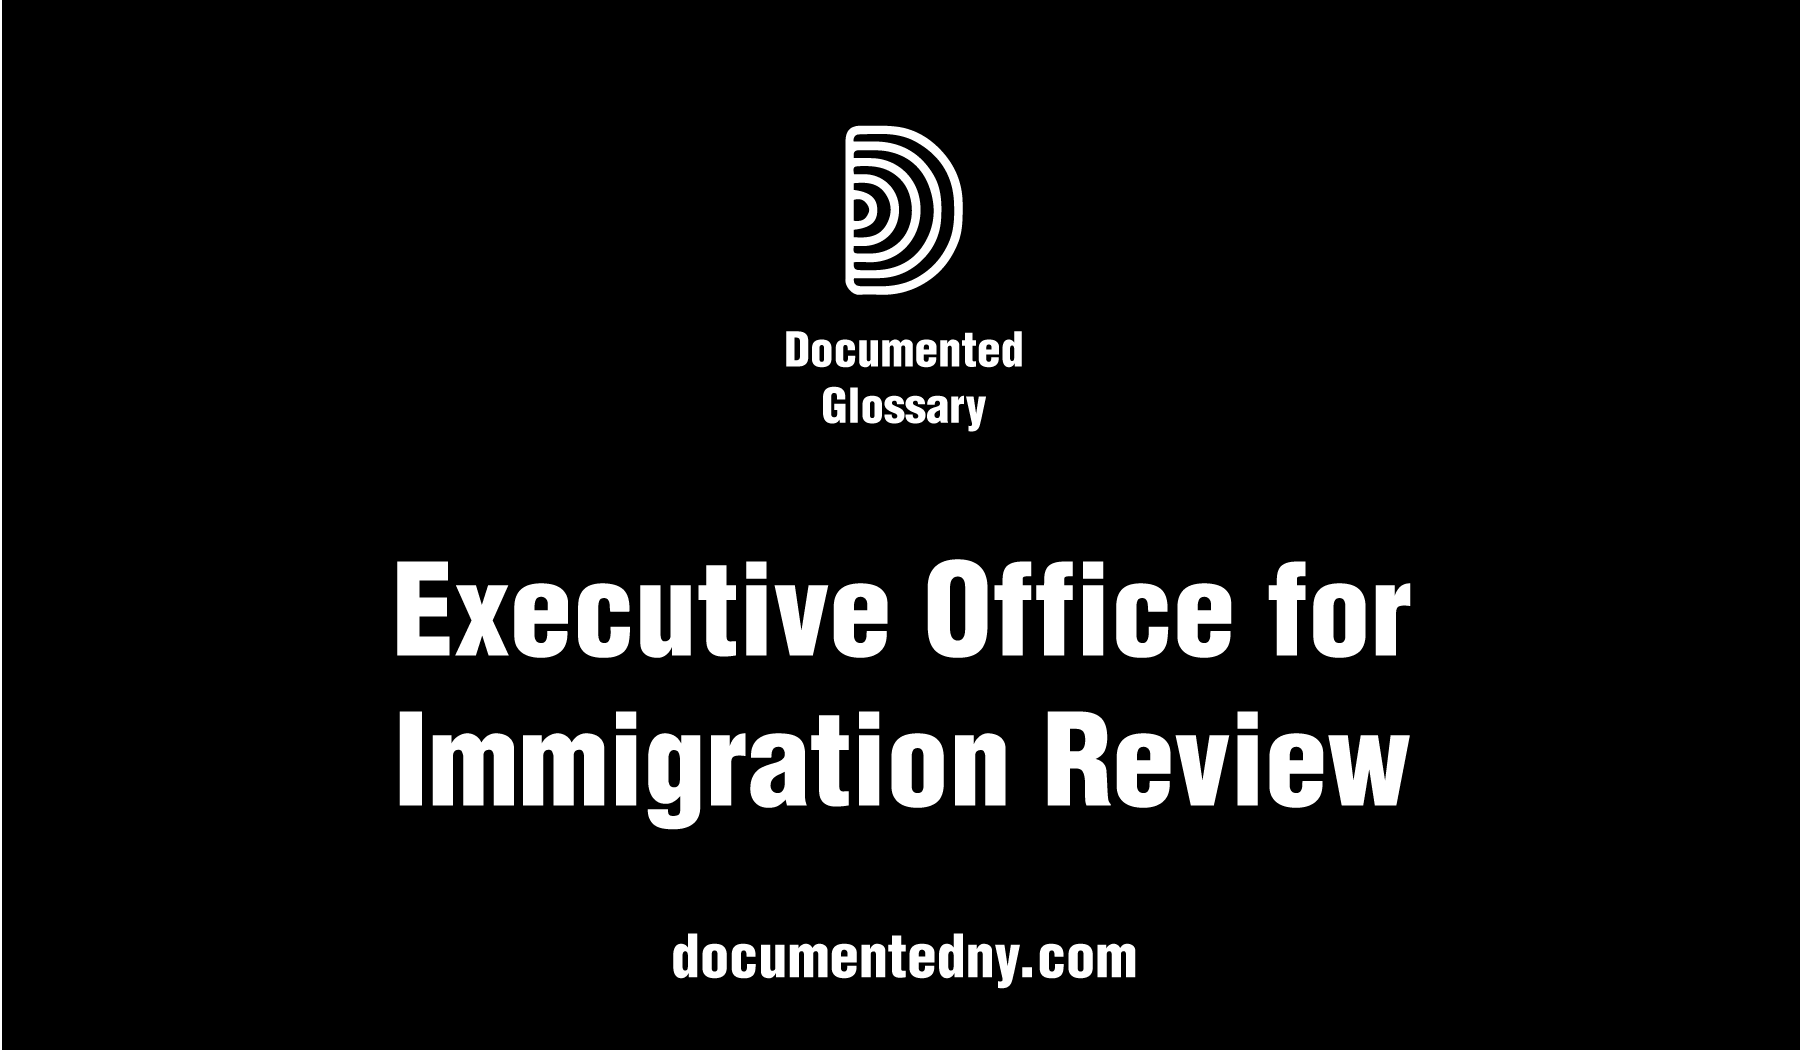 The Executive Office for Immigration Review oversees America's immigration courts, case appeals, and immigration-related employment cases.